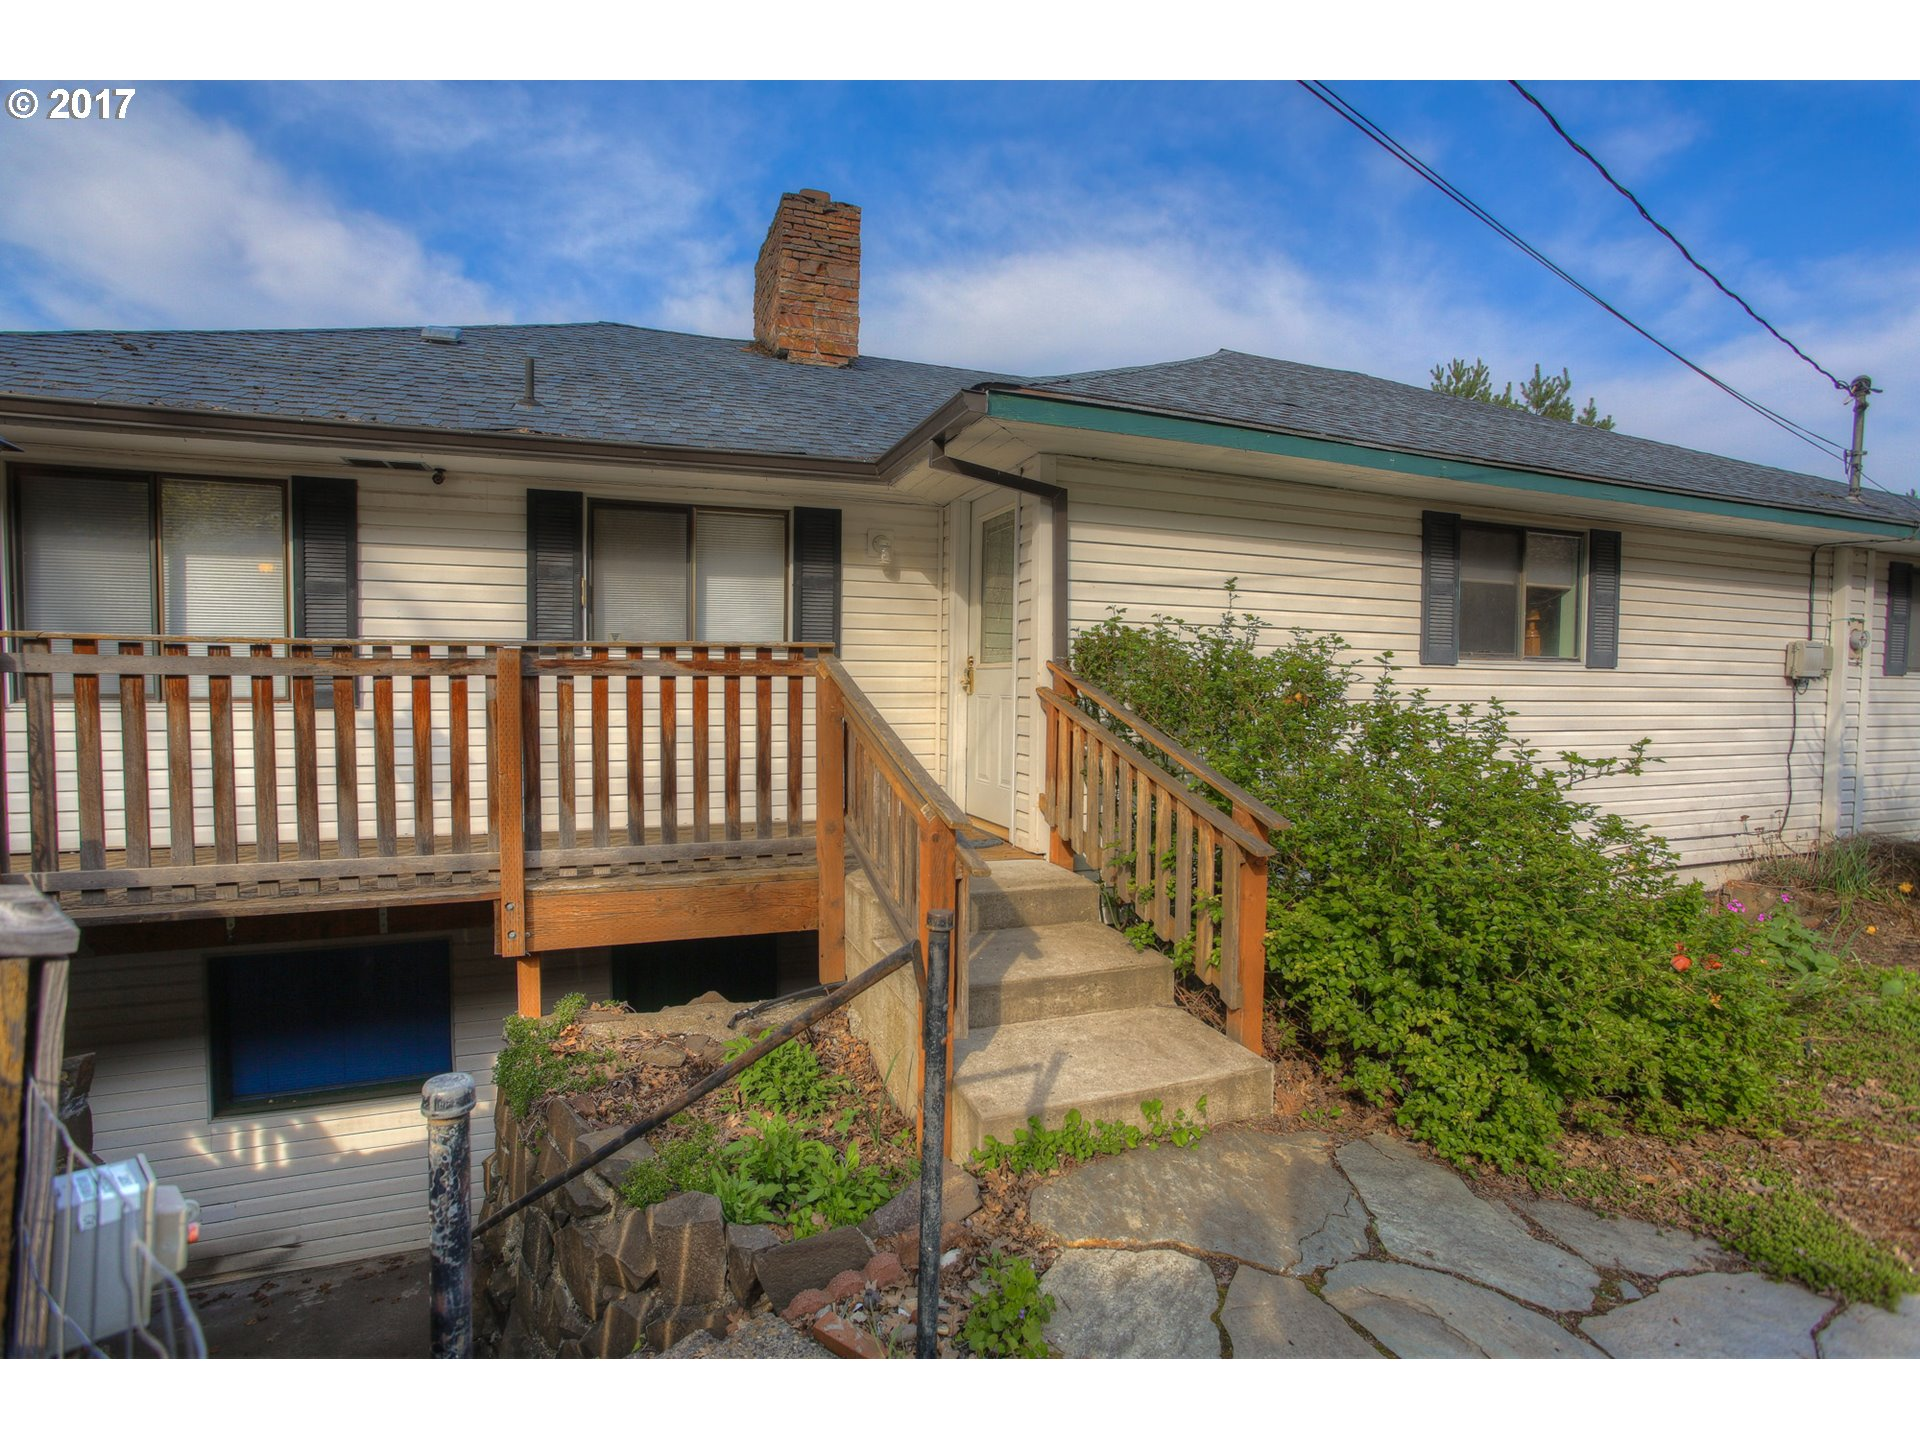 5875 HWY 30W, The Dalles, OR 97058